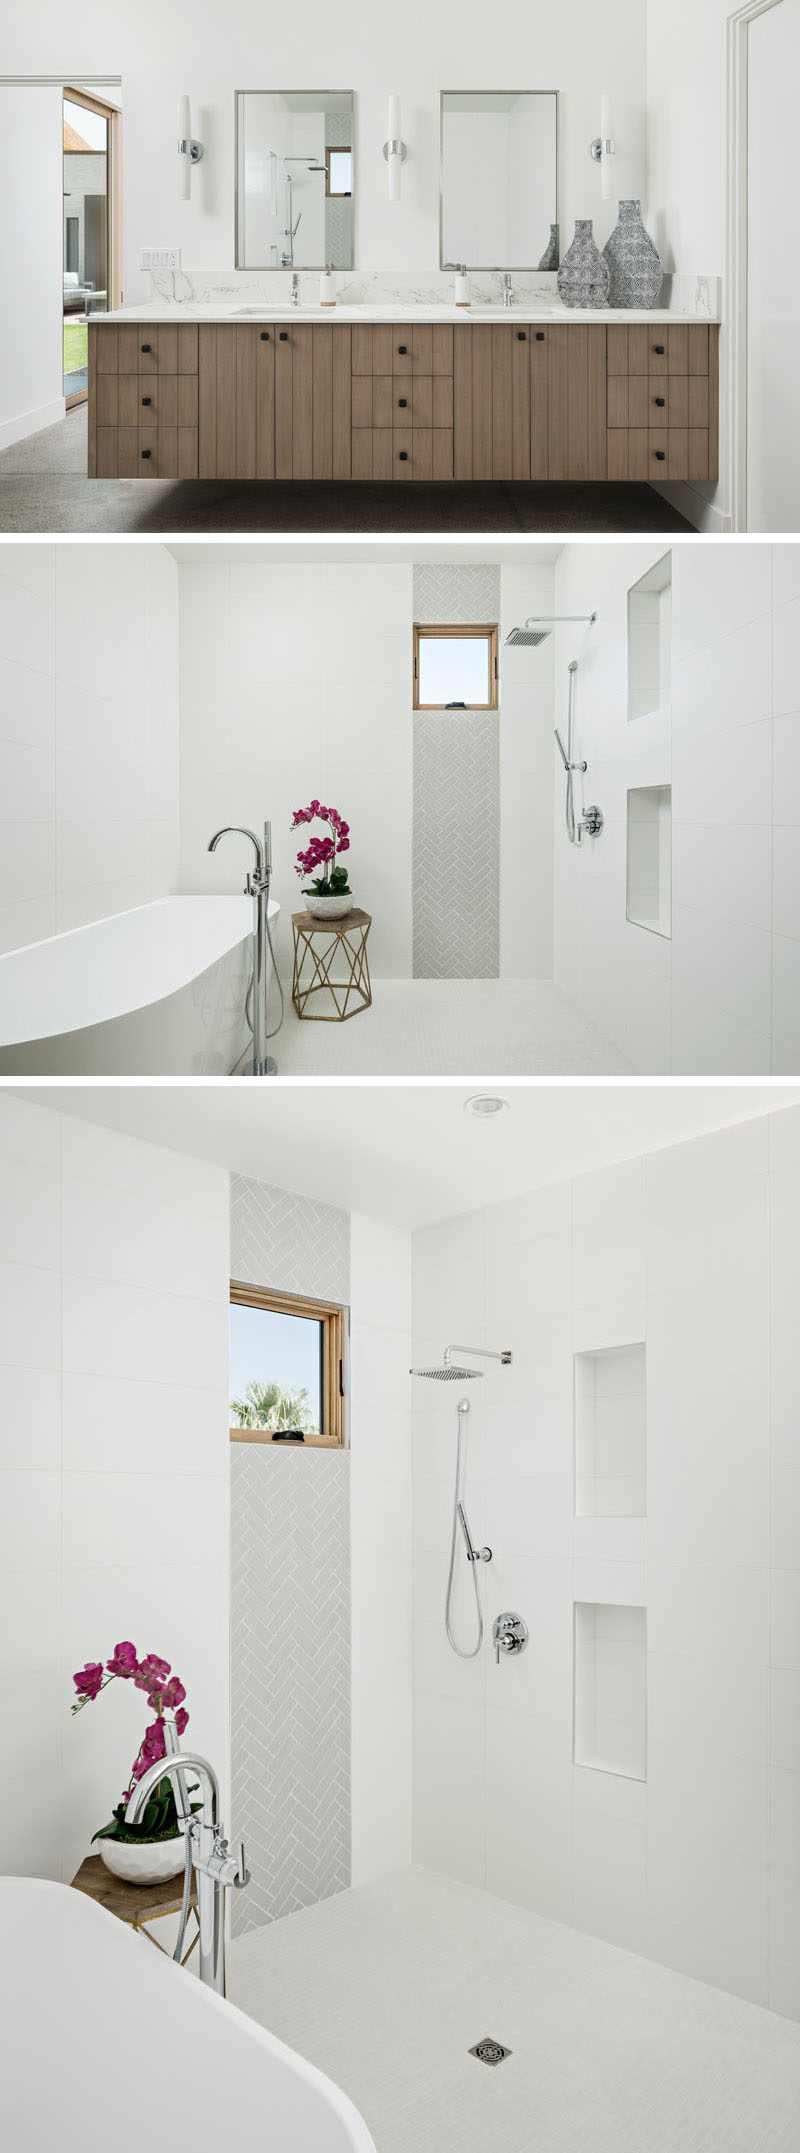 This modern master bathroom contains an open shower with built-in shelving, a freestanding tub and the wood vanity cabinetry echoes the vaulted ceiling of the great room. #MasterBathroom #ModernBathroom #BathroomDesign